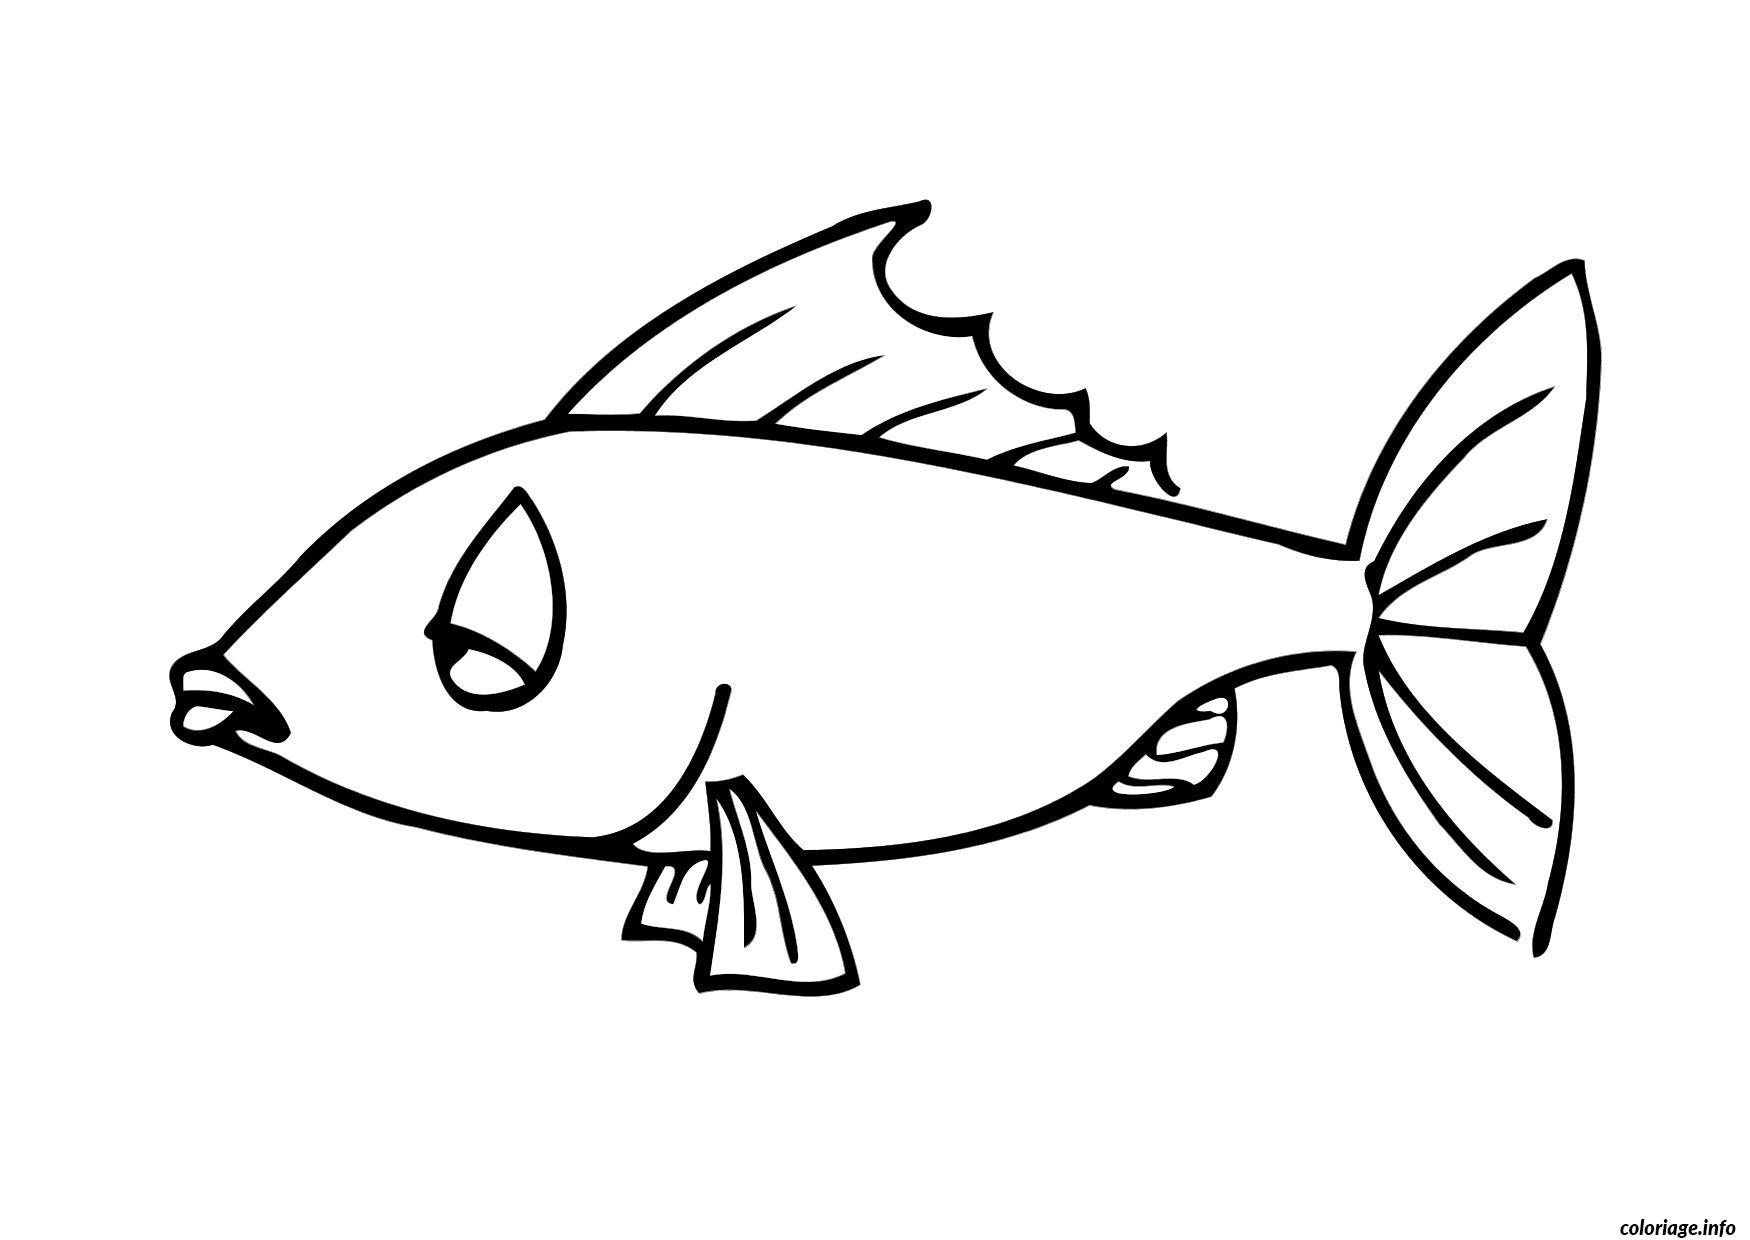 Coloriage poisson 17 dessin - Dessin poisson simple ...